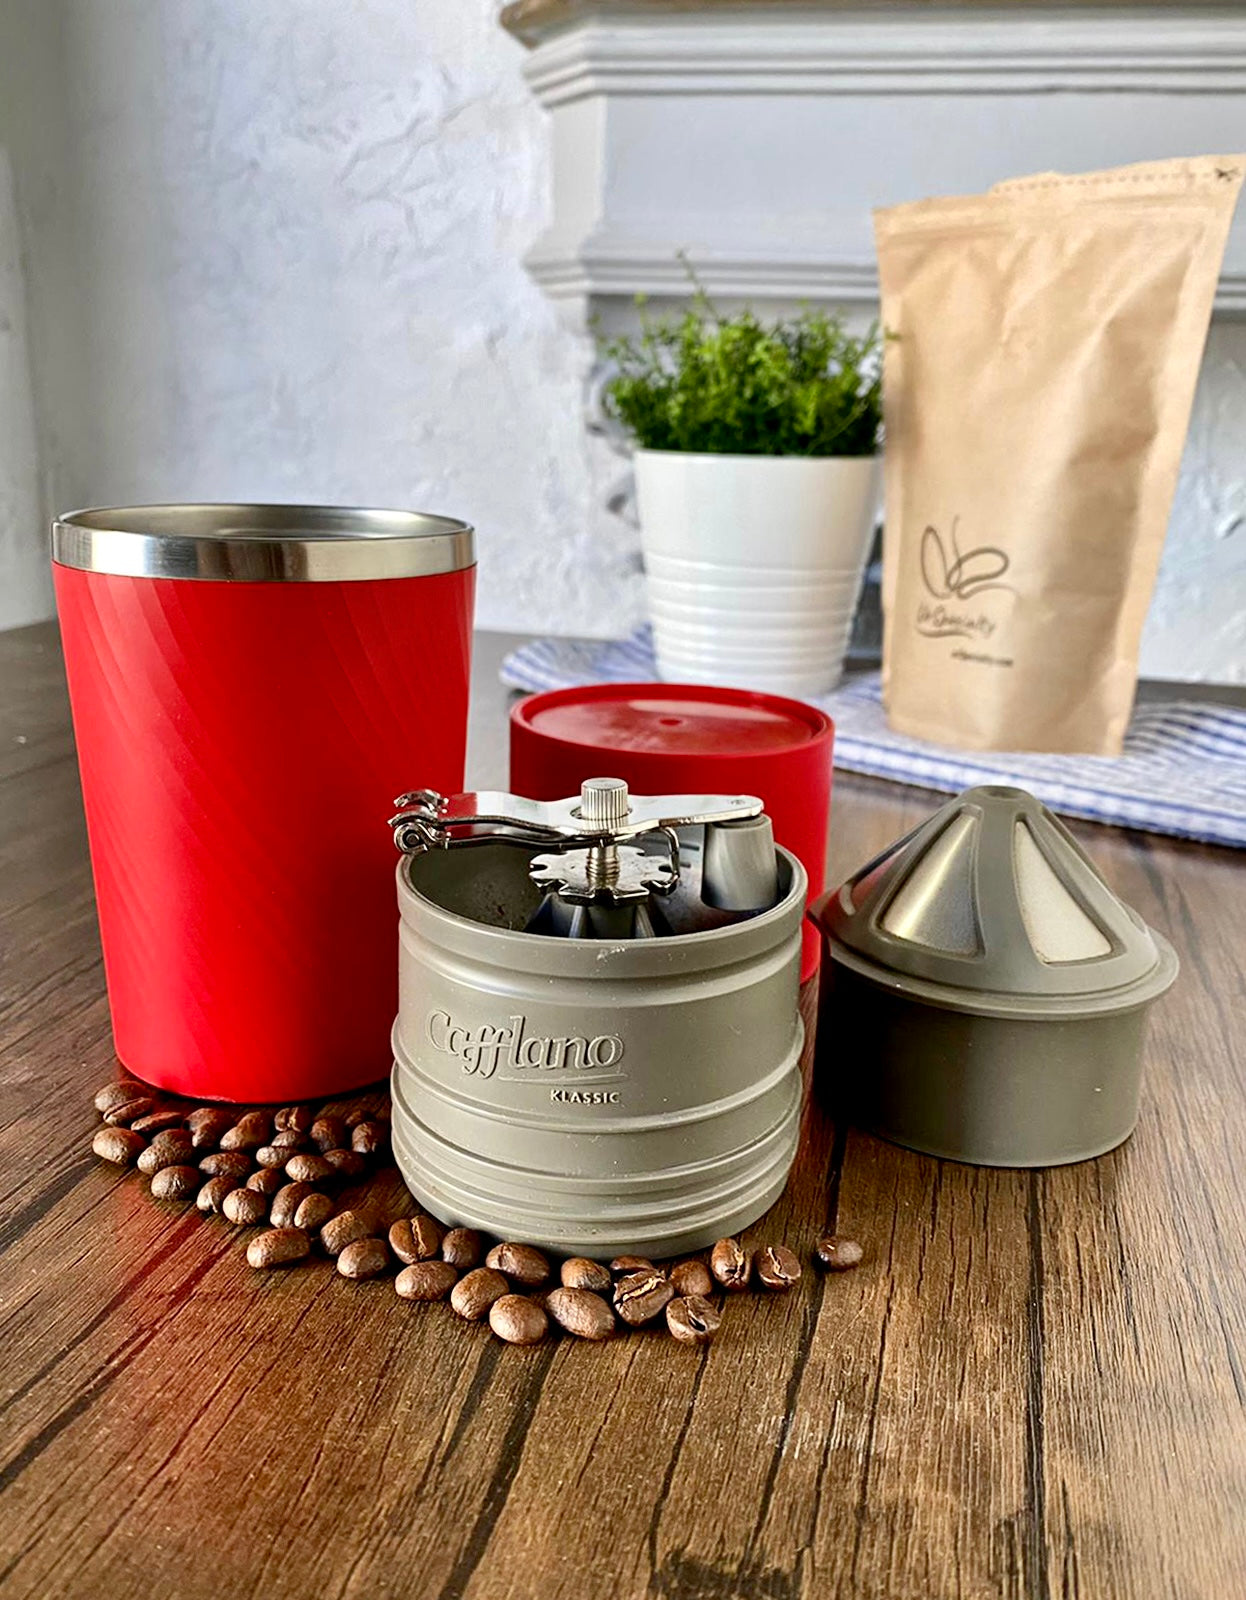 Home Coffee Starter Kit - Cafflano, & Beans